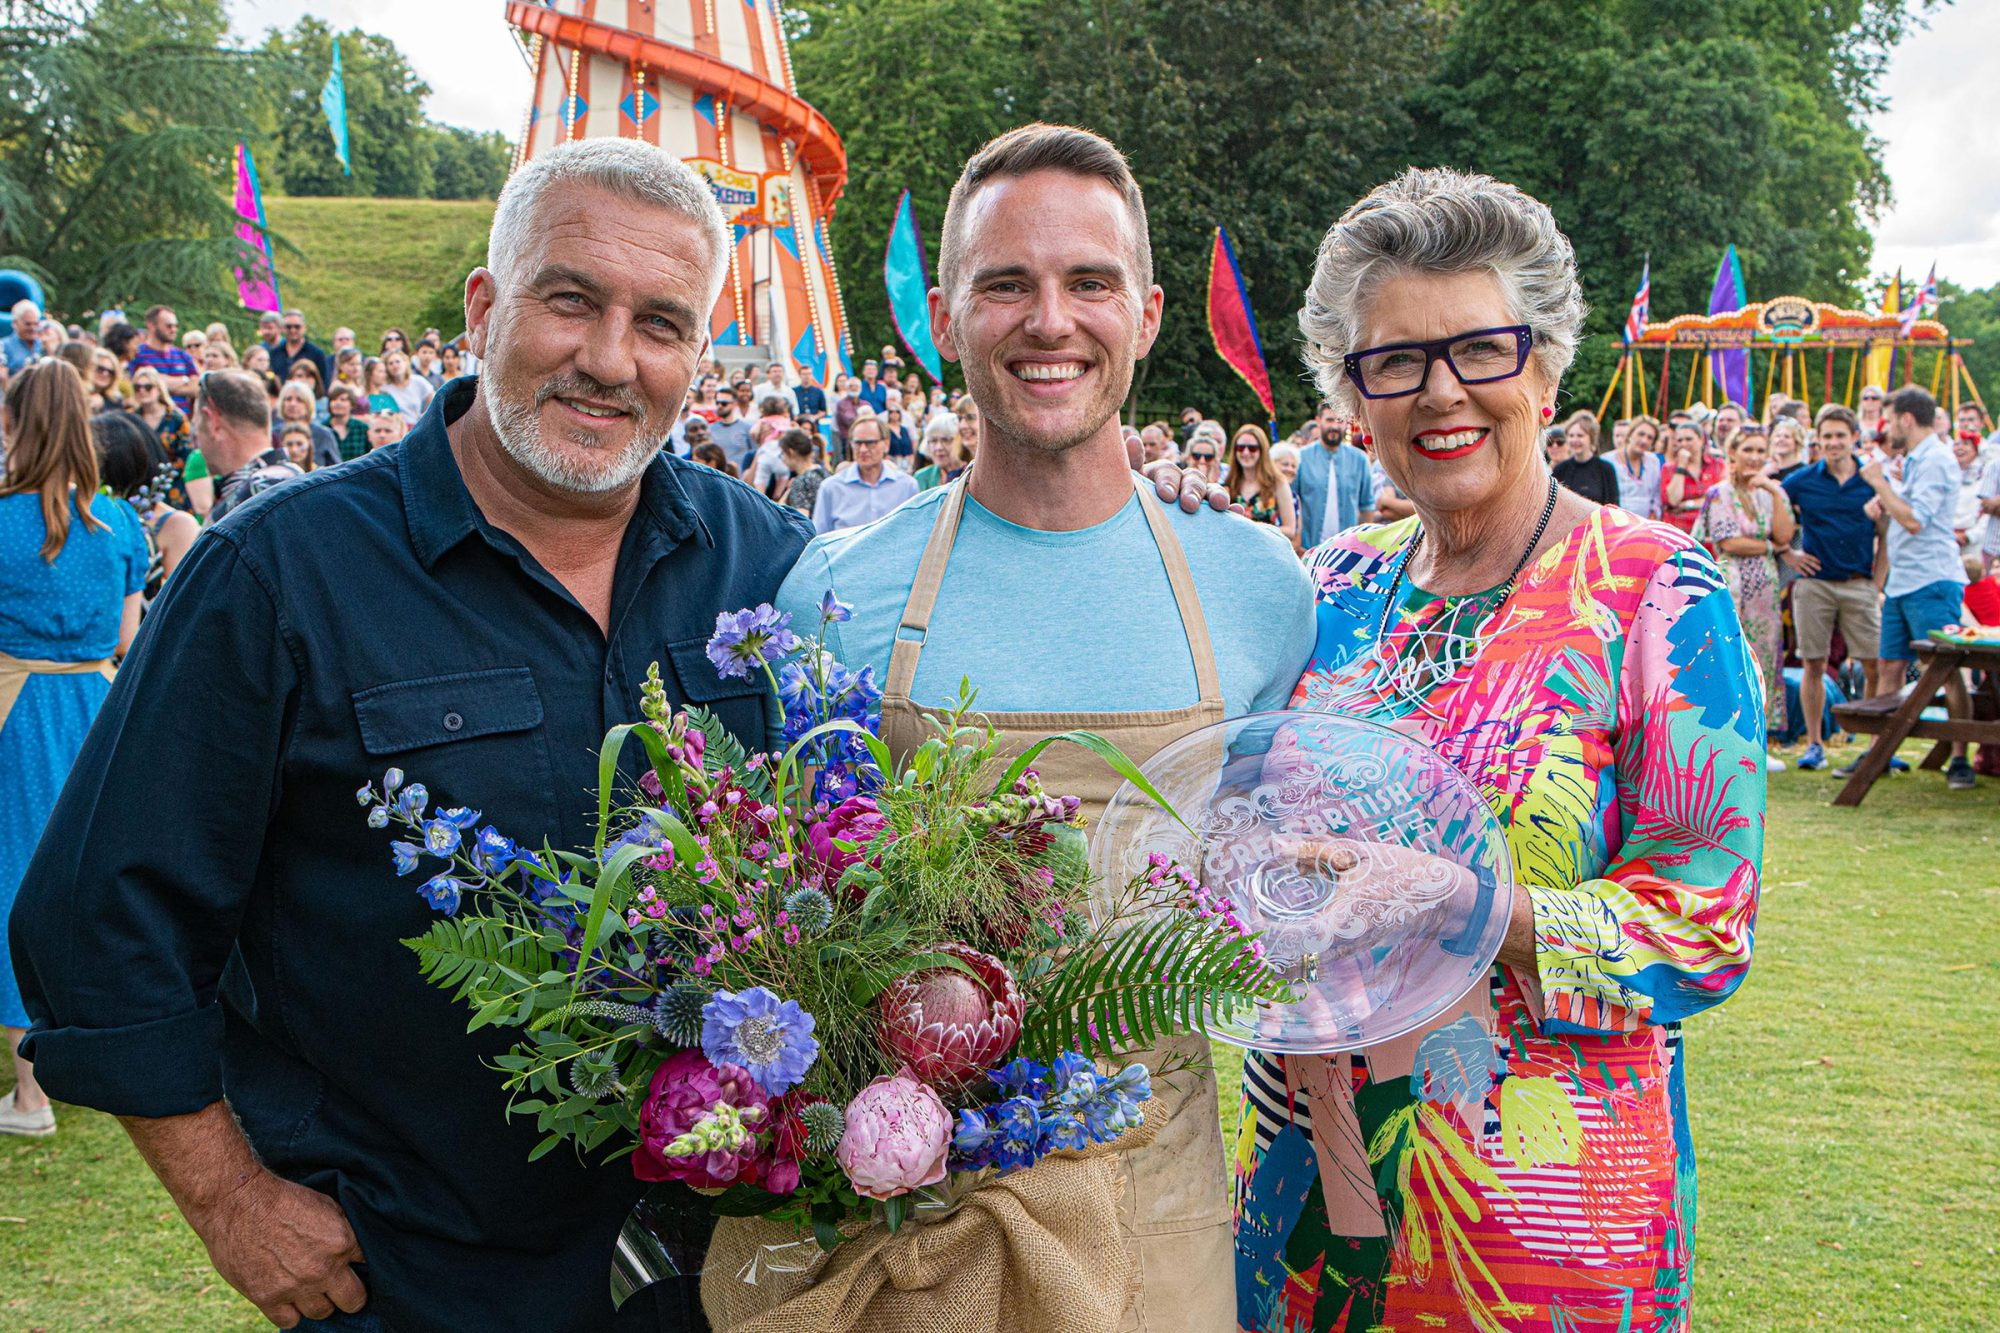 The Great British Bake Off - Final